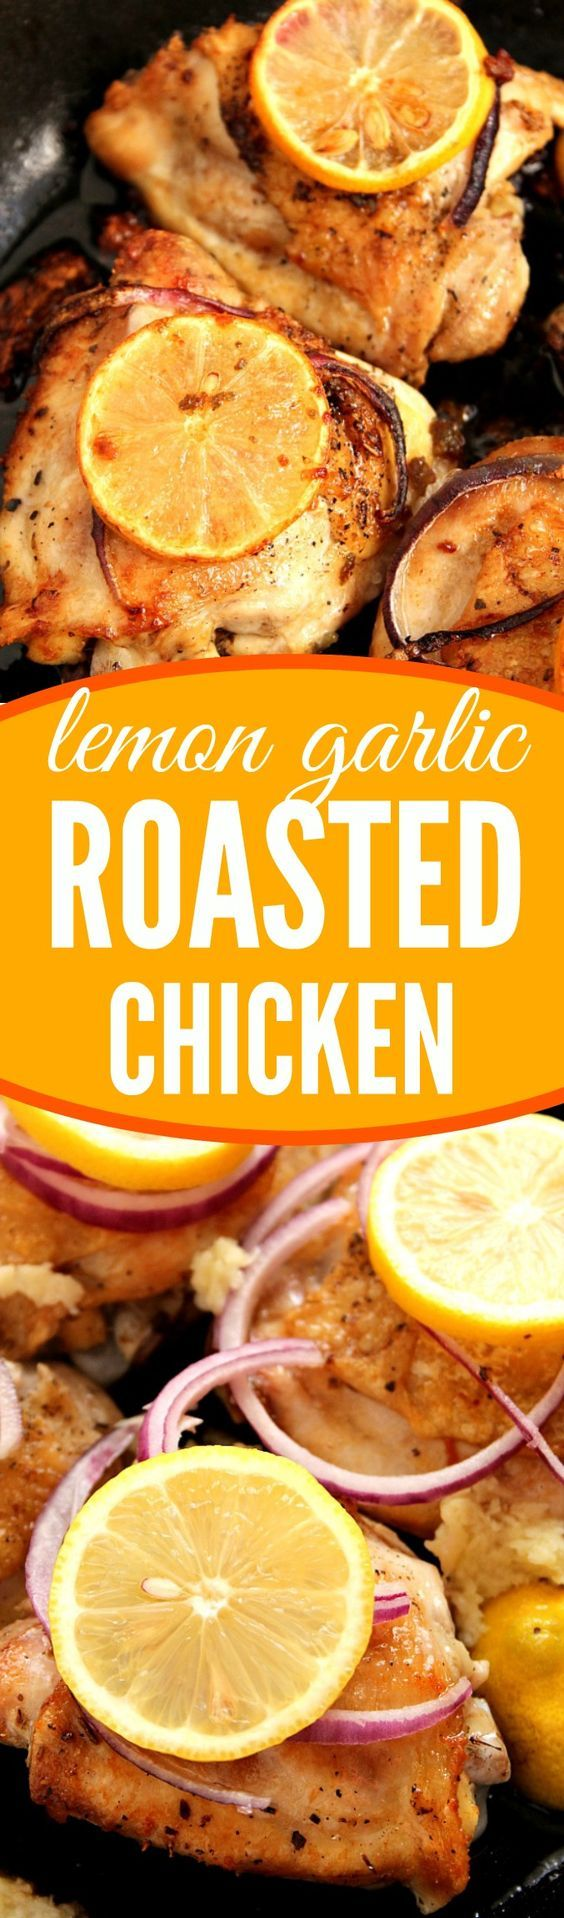 Lemon Garlic Roasted Chicken recipe - mouth-watering chicken thighs roasted with garlic and lemons. Ridiculously easy to make and pure comfort food. This is inexpensive dinner, perfect for a busy weeknight or a weekend!